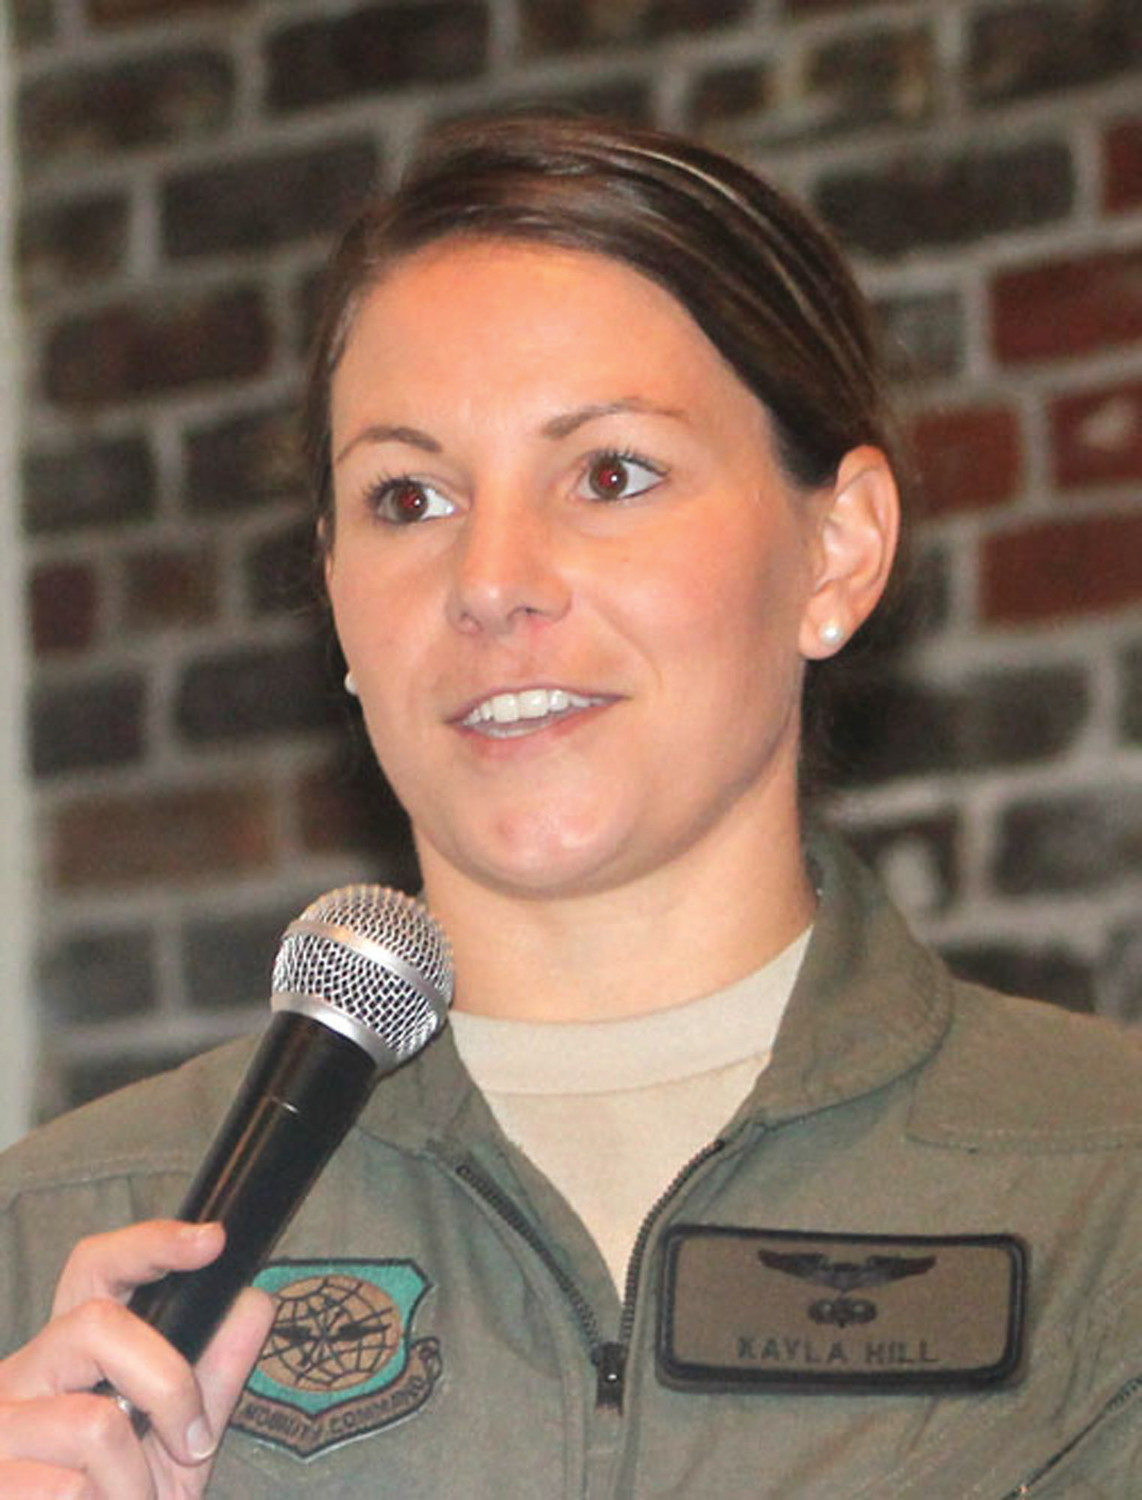 "Air Force Capt. Kayla Hill wanted to be a gymnast growing up. It wasn't until her thoughts turned to college did she give flying a thought. Her college counselor suggested a career in the Air Force, but she had to convince her mother first. Hill thought flying was ""kinda cool"" and took her first lessons in a Cessna. She applied at the Air Force Academy, and her talents as a gymnast helped pave the way."